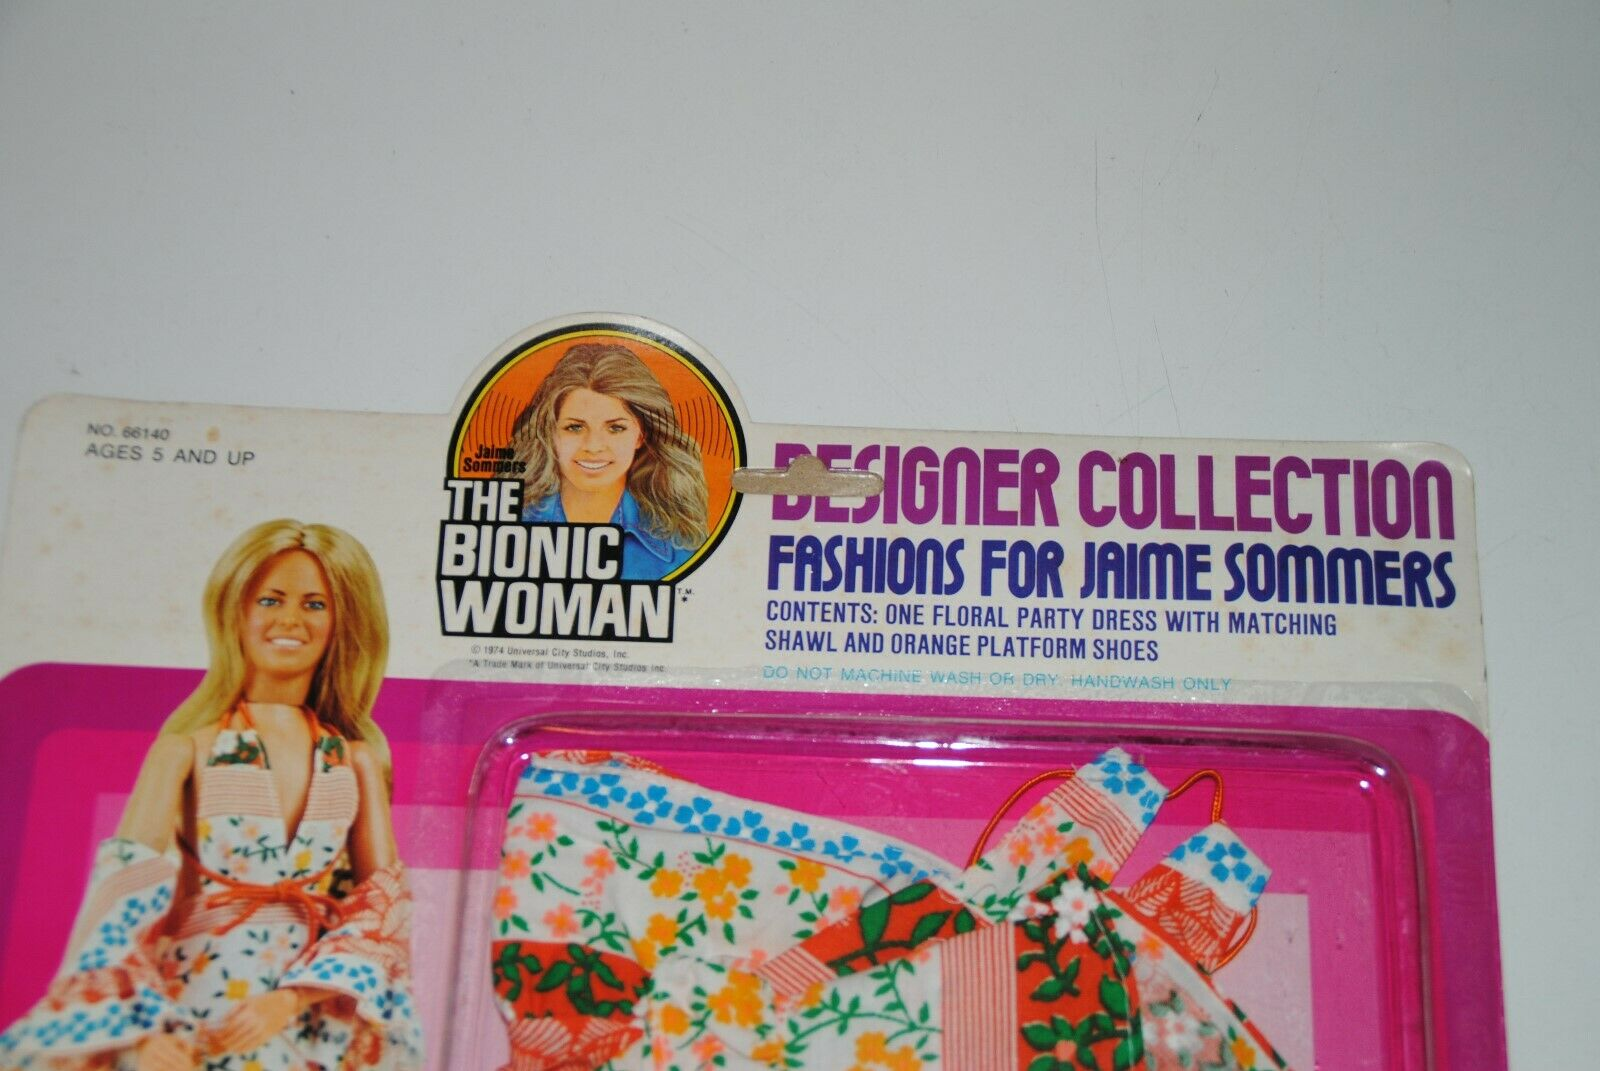 THE SIX MILLION bambolaAR bambolaAR bambolaAR THE BIONIC donna   FLORAL DELI  OUTFIT JAMIE SOMMERS MOC 8d4033